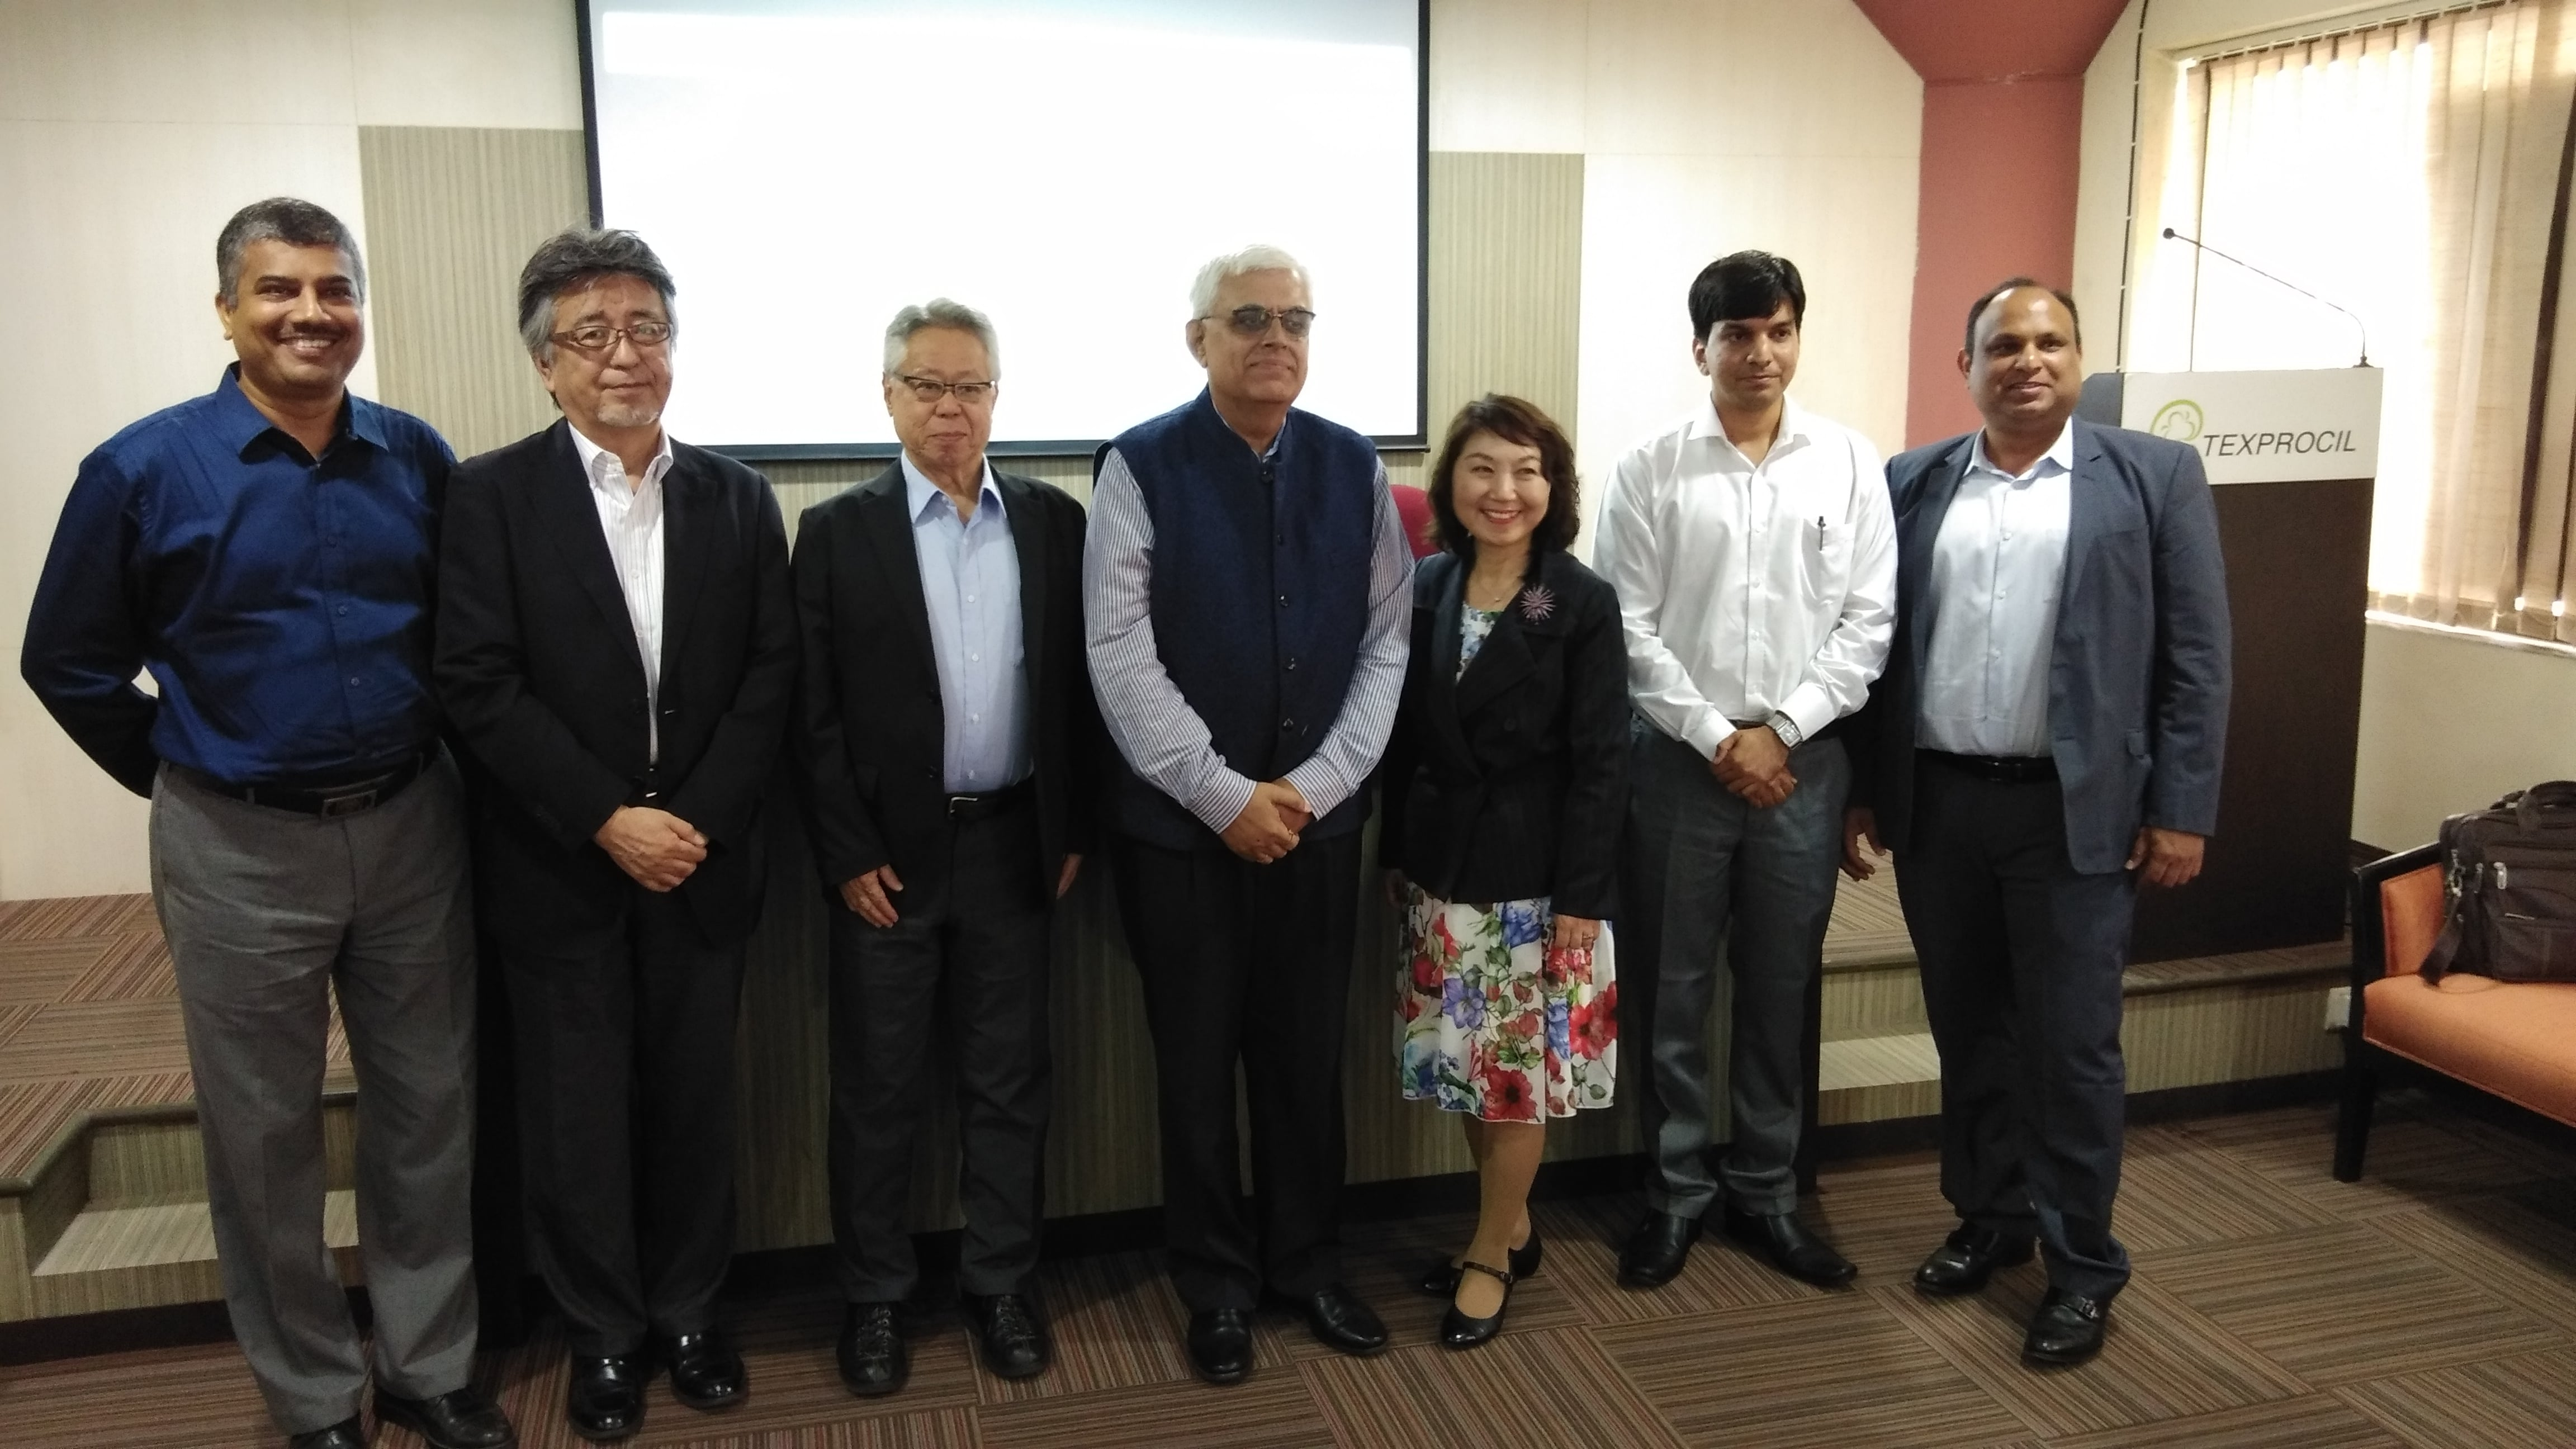 TEXPROCIL in association with Japan India Industry Promotion Association (JIIPA) organized a Seminar by Japanese designers on 3rd June, 2019 at the Council's Head Office in Mumbai.